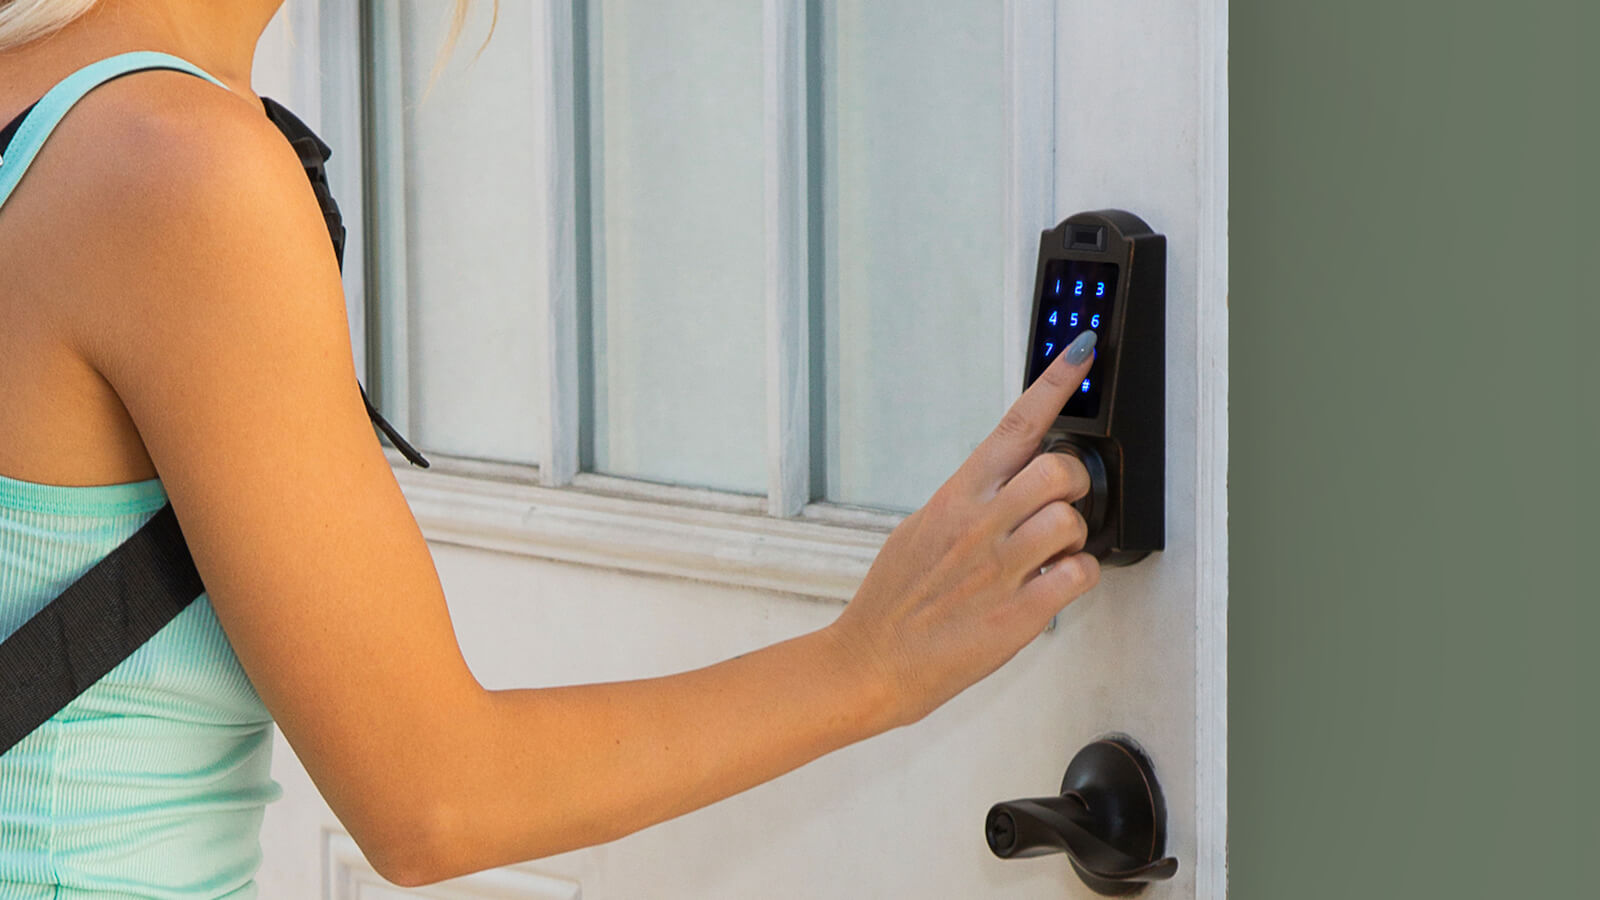 BenjiLock By Hampton keyless fingerprint entry stores 10 fingerprints and 25 user codes